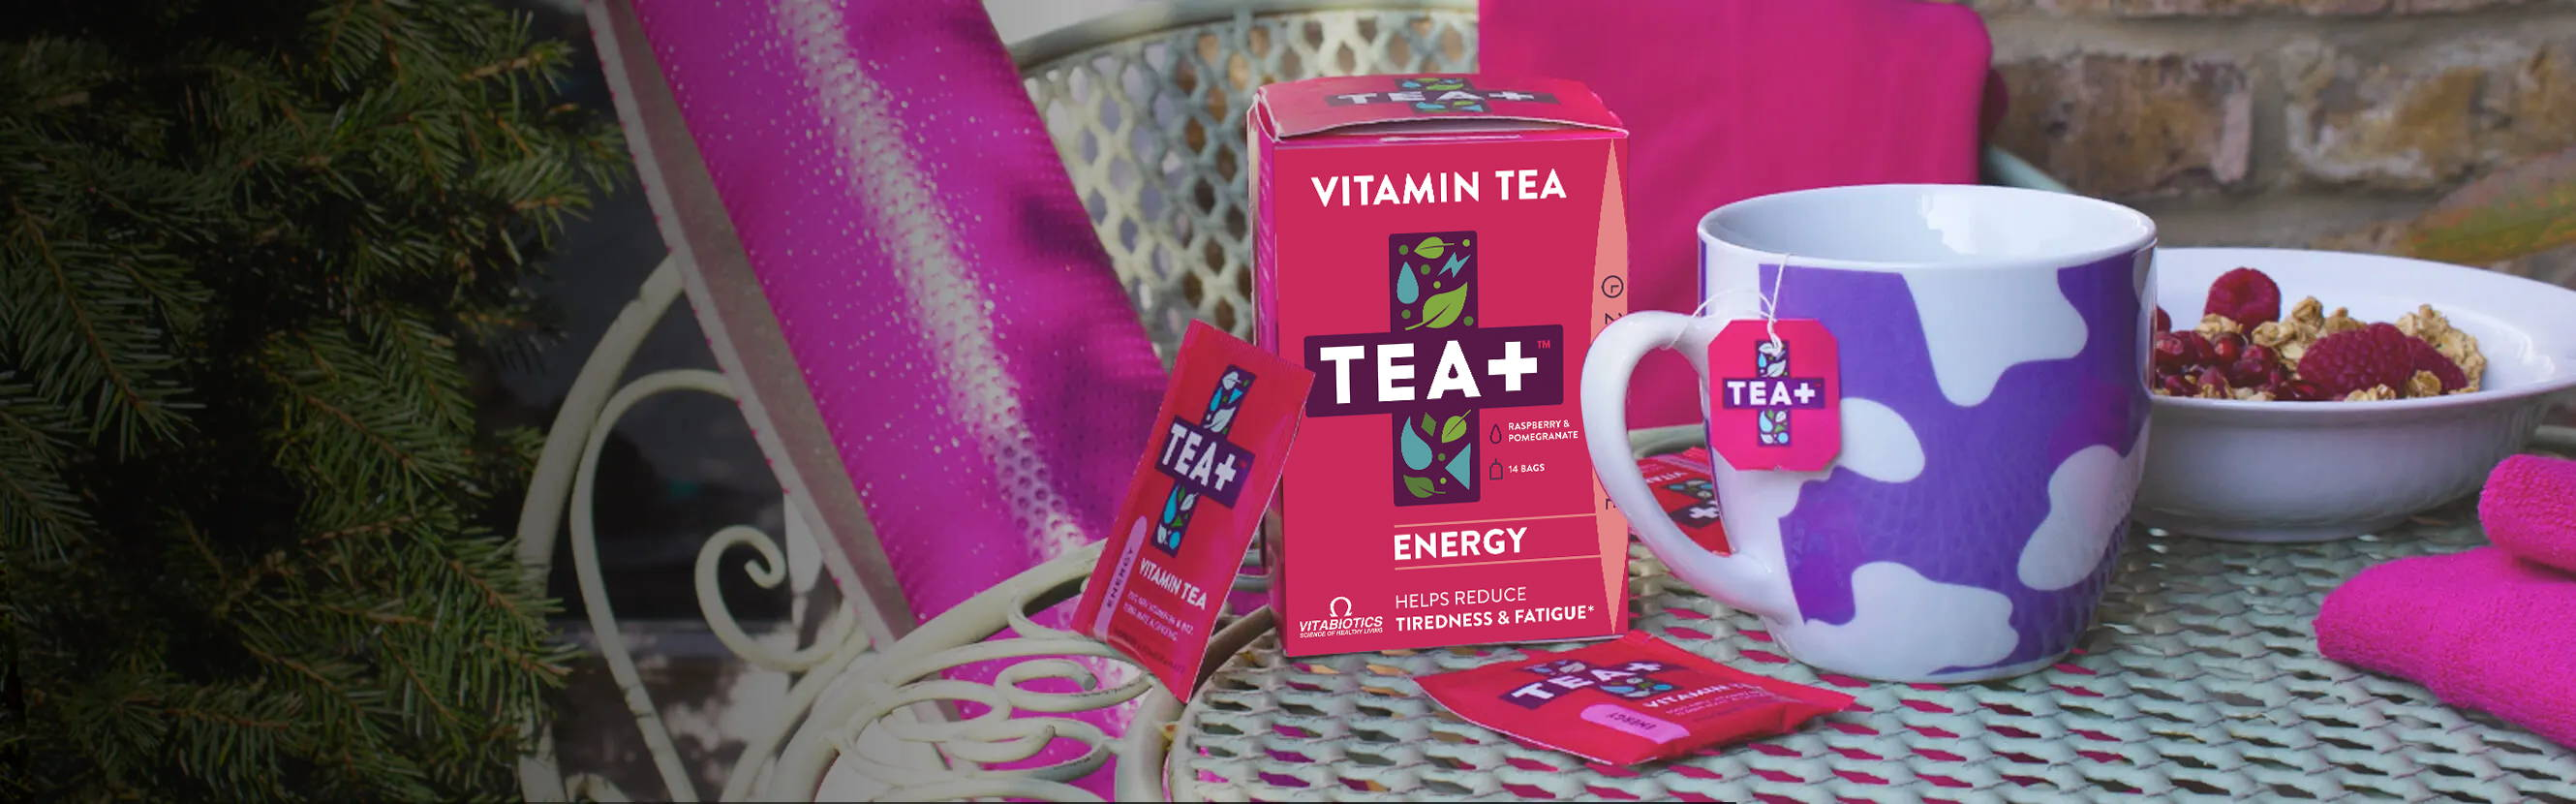 From studying to the school run, TEA+ Energy Vitamin Tea can bolster your daily intake of energy-releasing vitamin B complex. With a blend of Yerba Mate, vitamin C, Ginseng, vitamin B6 and B12, it's your daily boost in a cup.